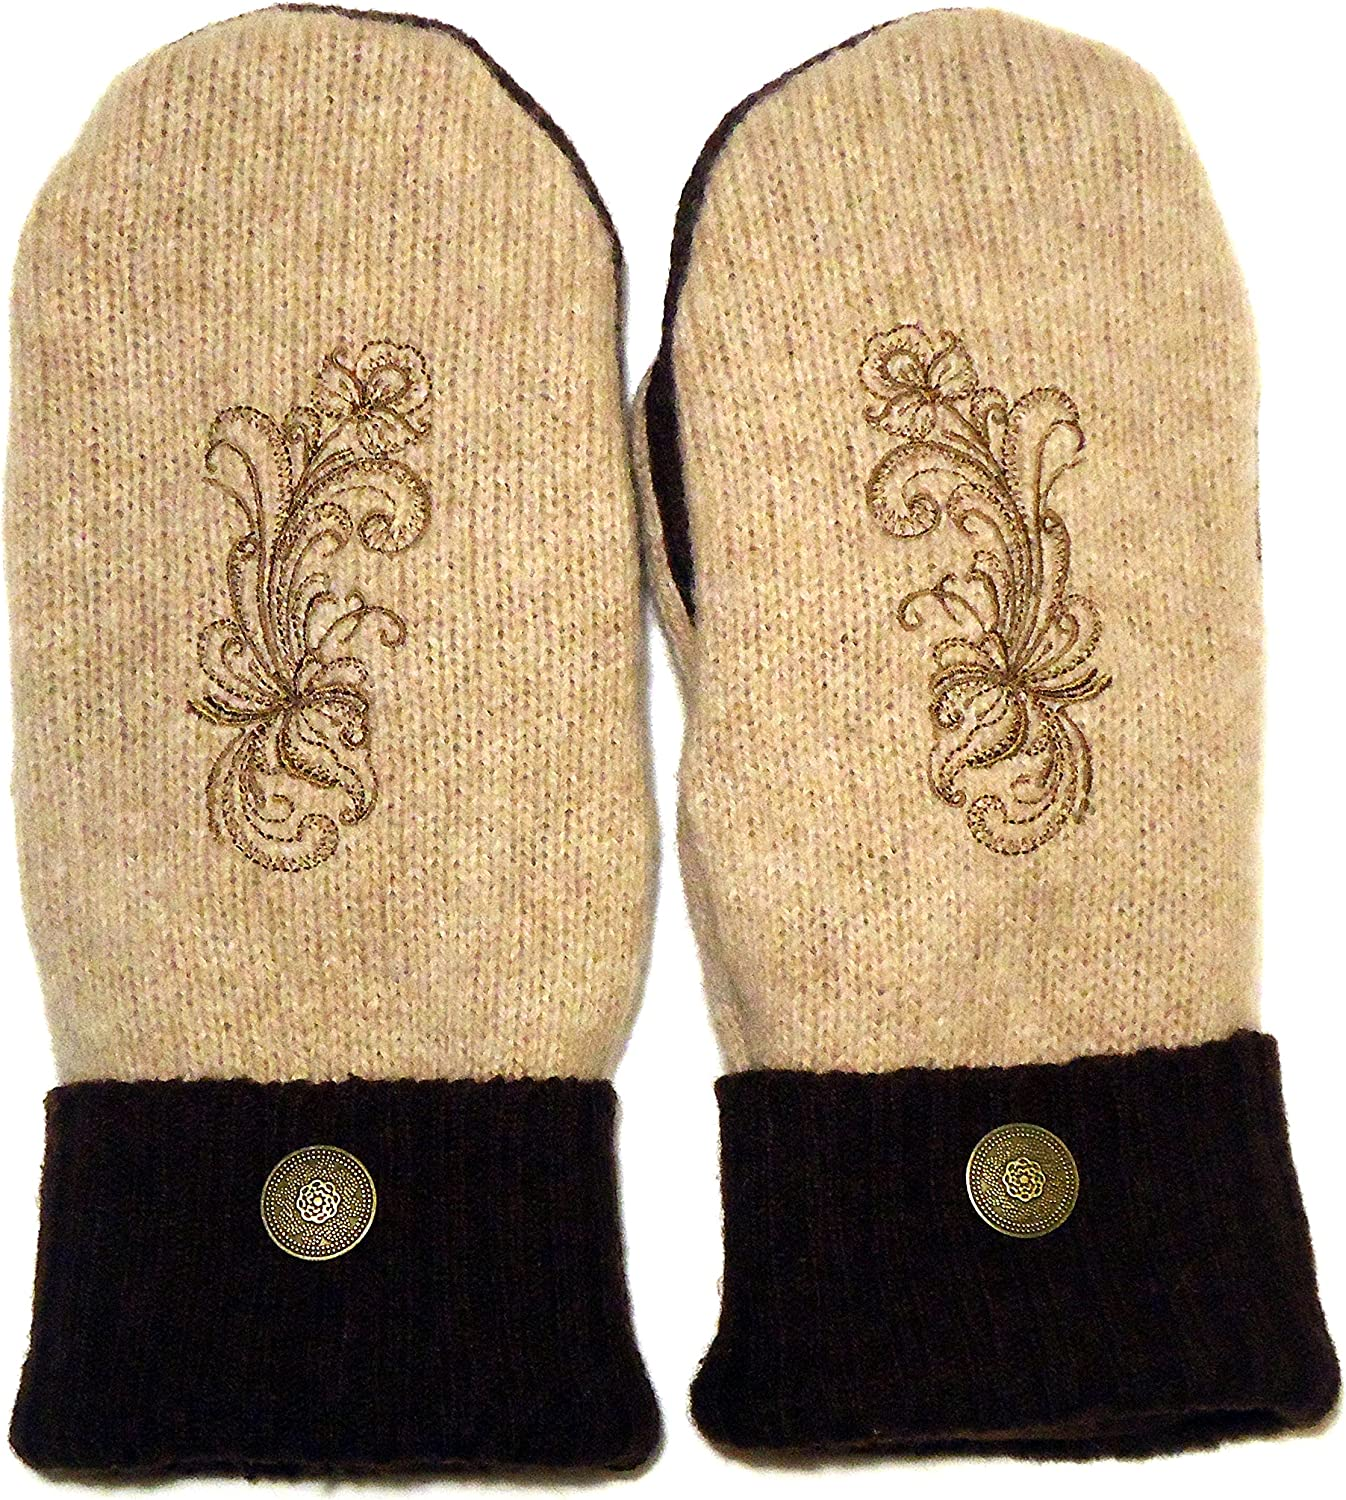 Integrity Designs Sweater Mittens, 100% Wool, Camel and Dark Brown with Polar Fleece Lining, Adult Size Med/Large, Super Thick, Rosemaling Folk Art Motif Embroidery, Contrasting Button